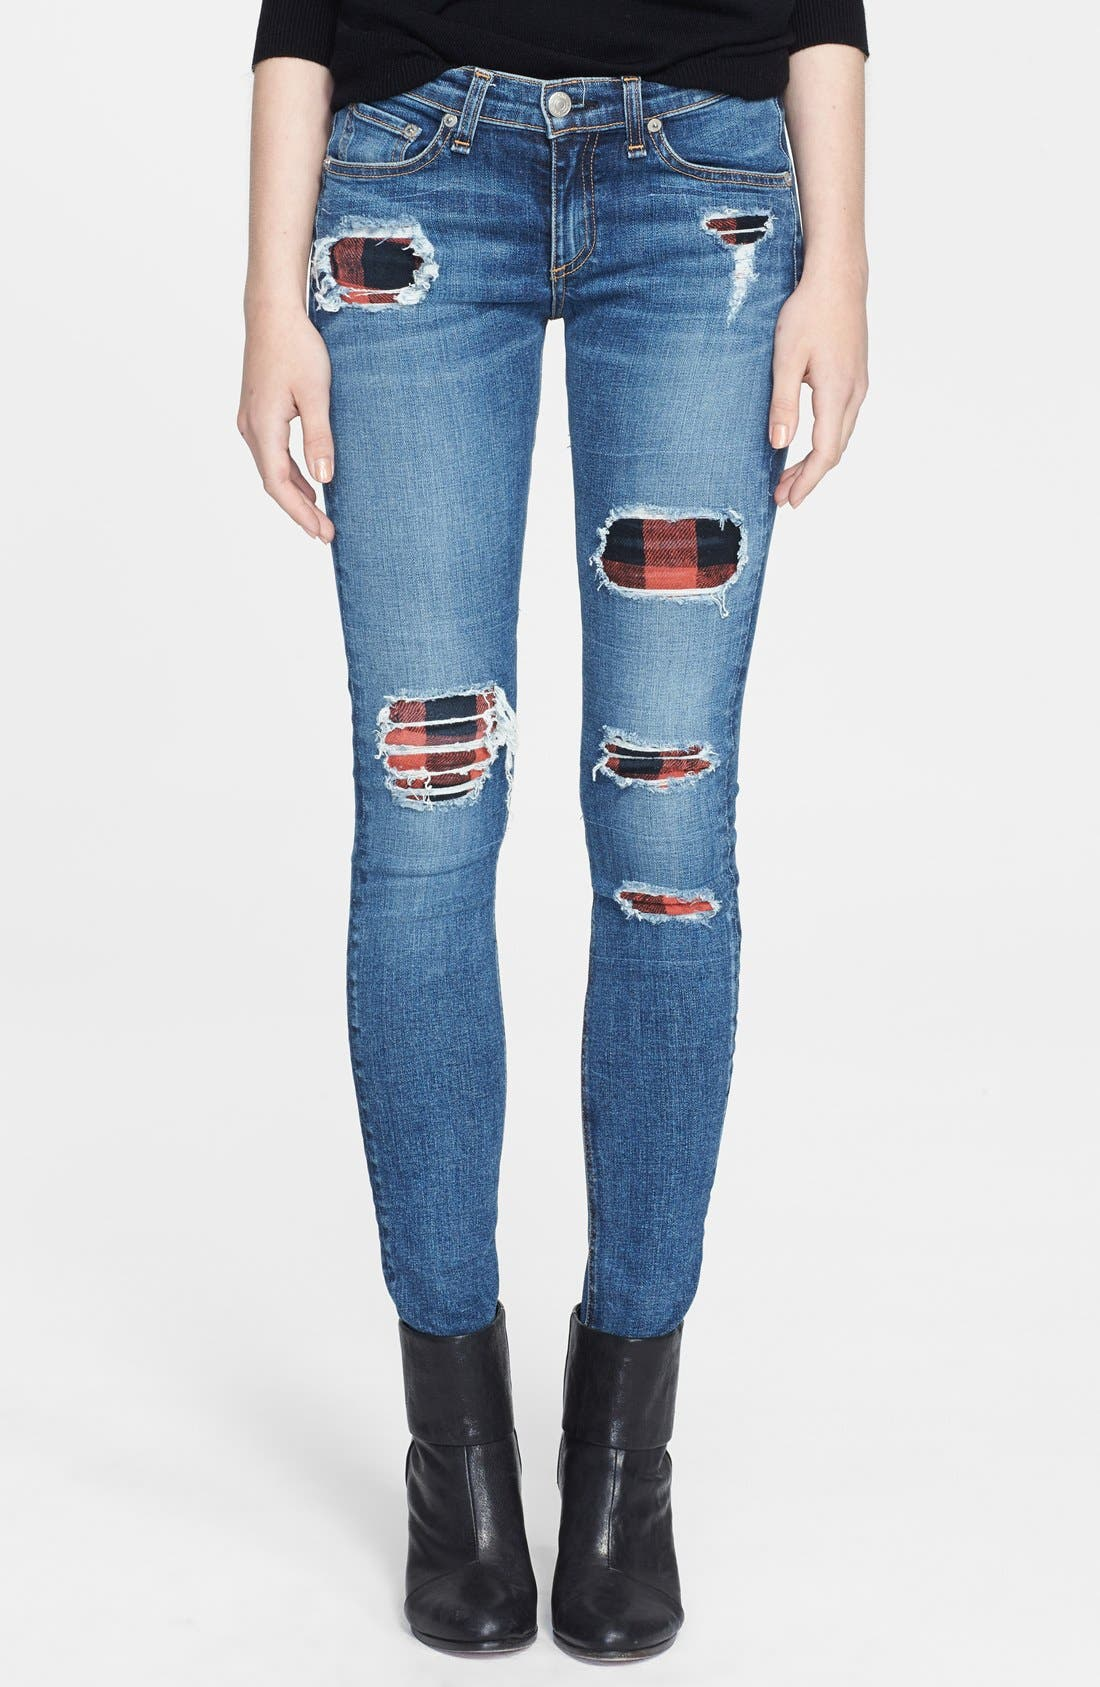 Alternate Image 1 Selected - rag & bone/JEAN Skinny Stretch Jeans (Sloane Plaid Repair)